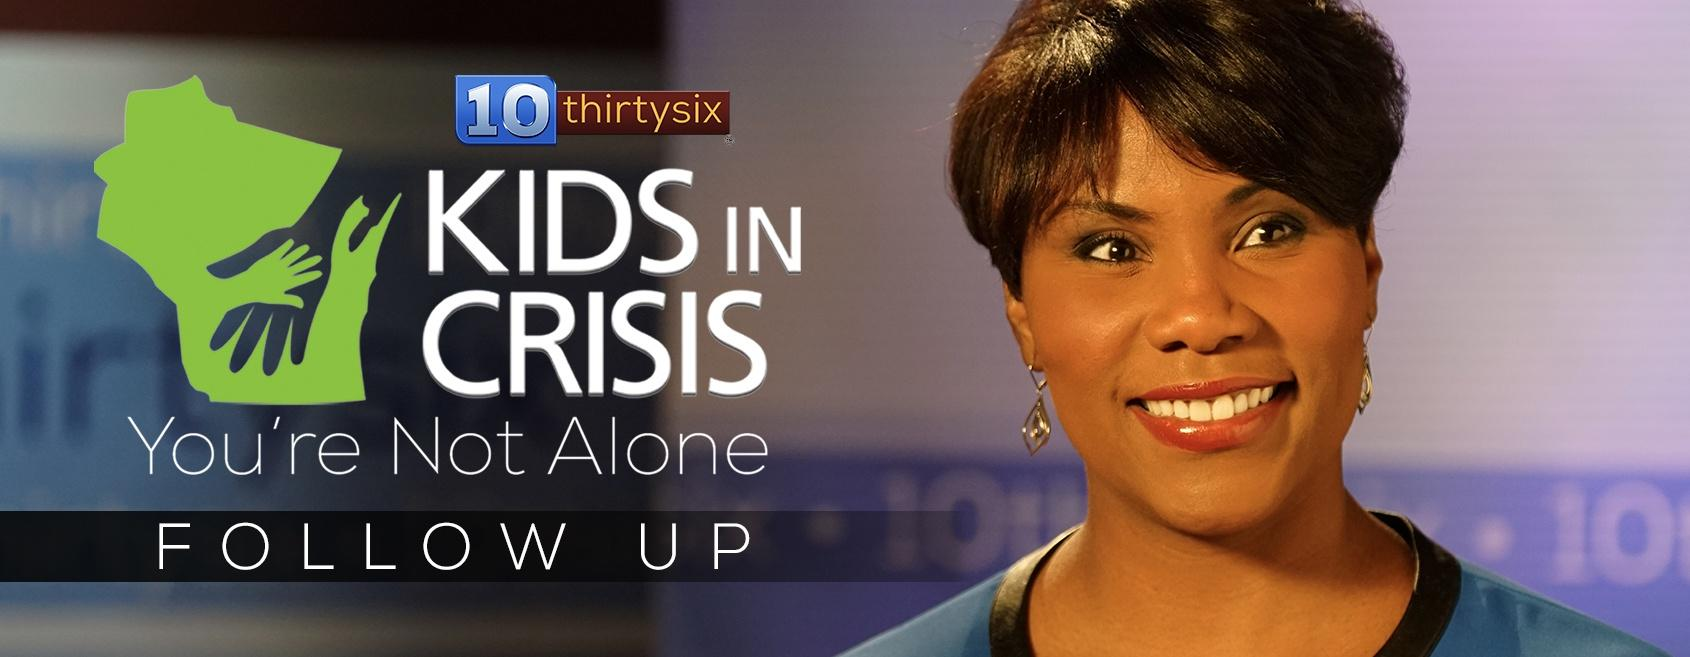 Kids in Crisis Follow Up Show Link